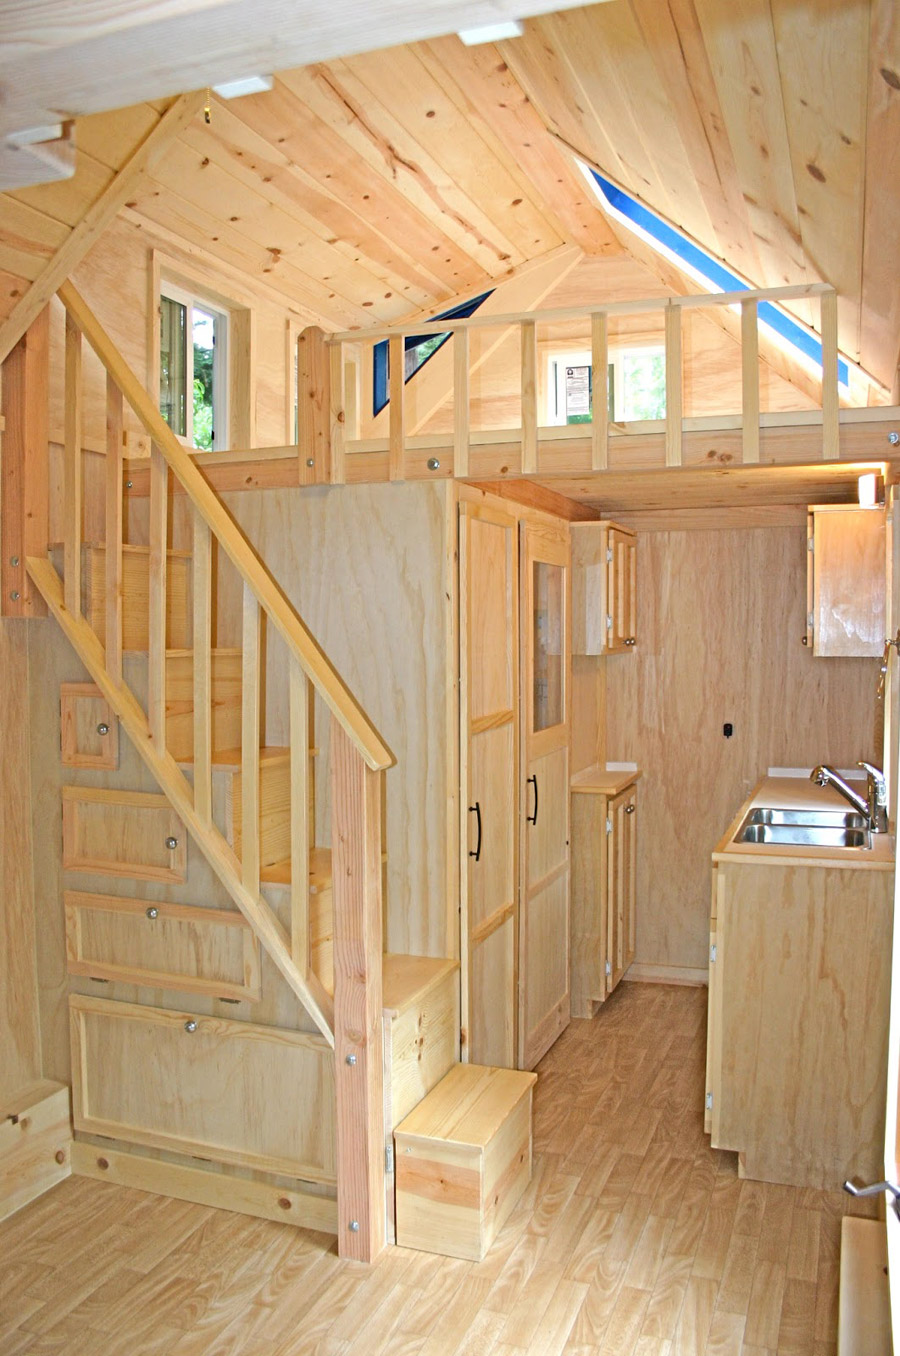 Molecule tiny house tiny house swoon for Small house plans images